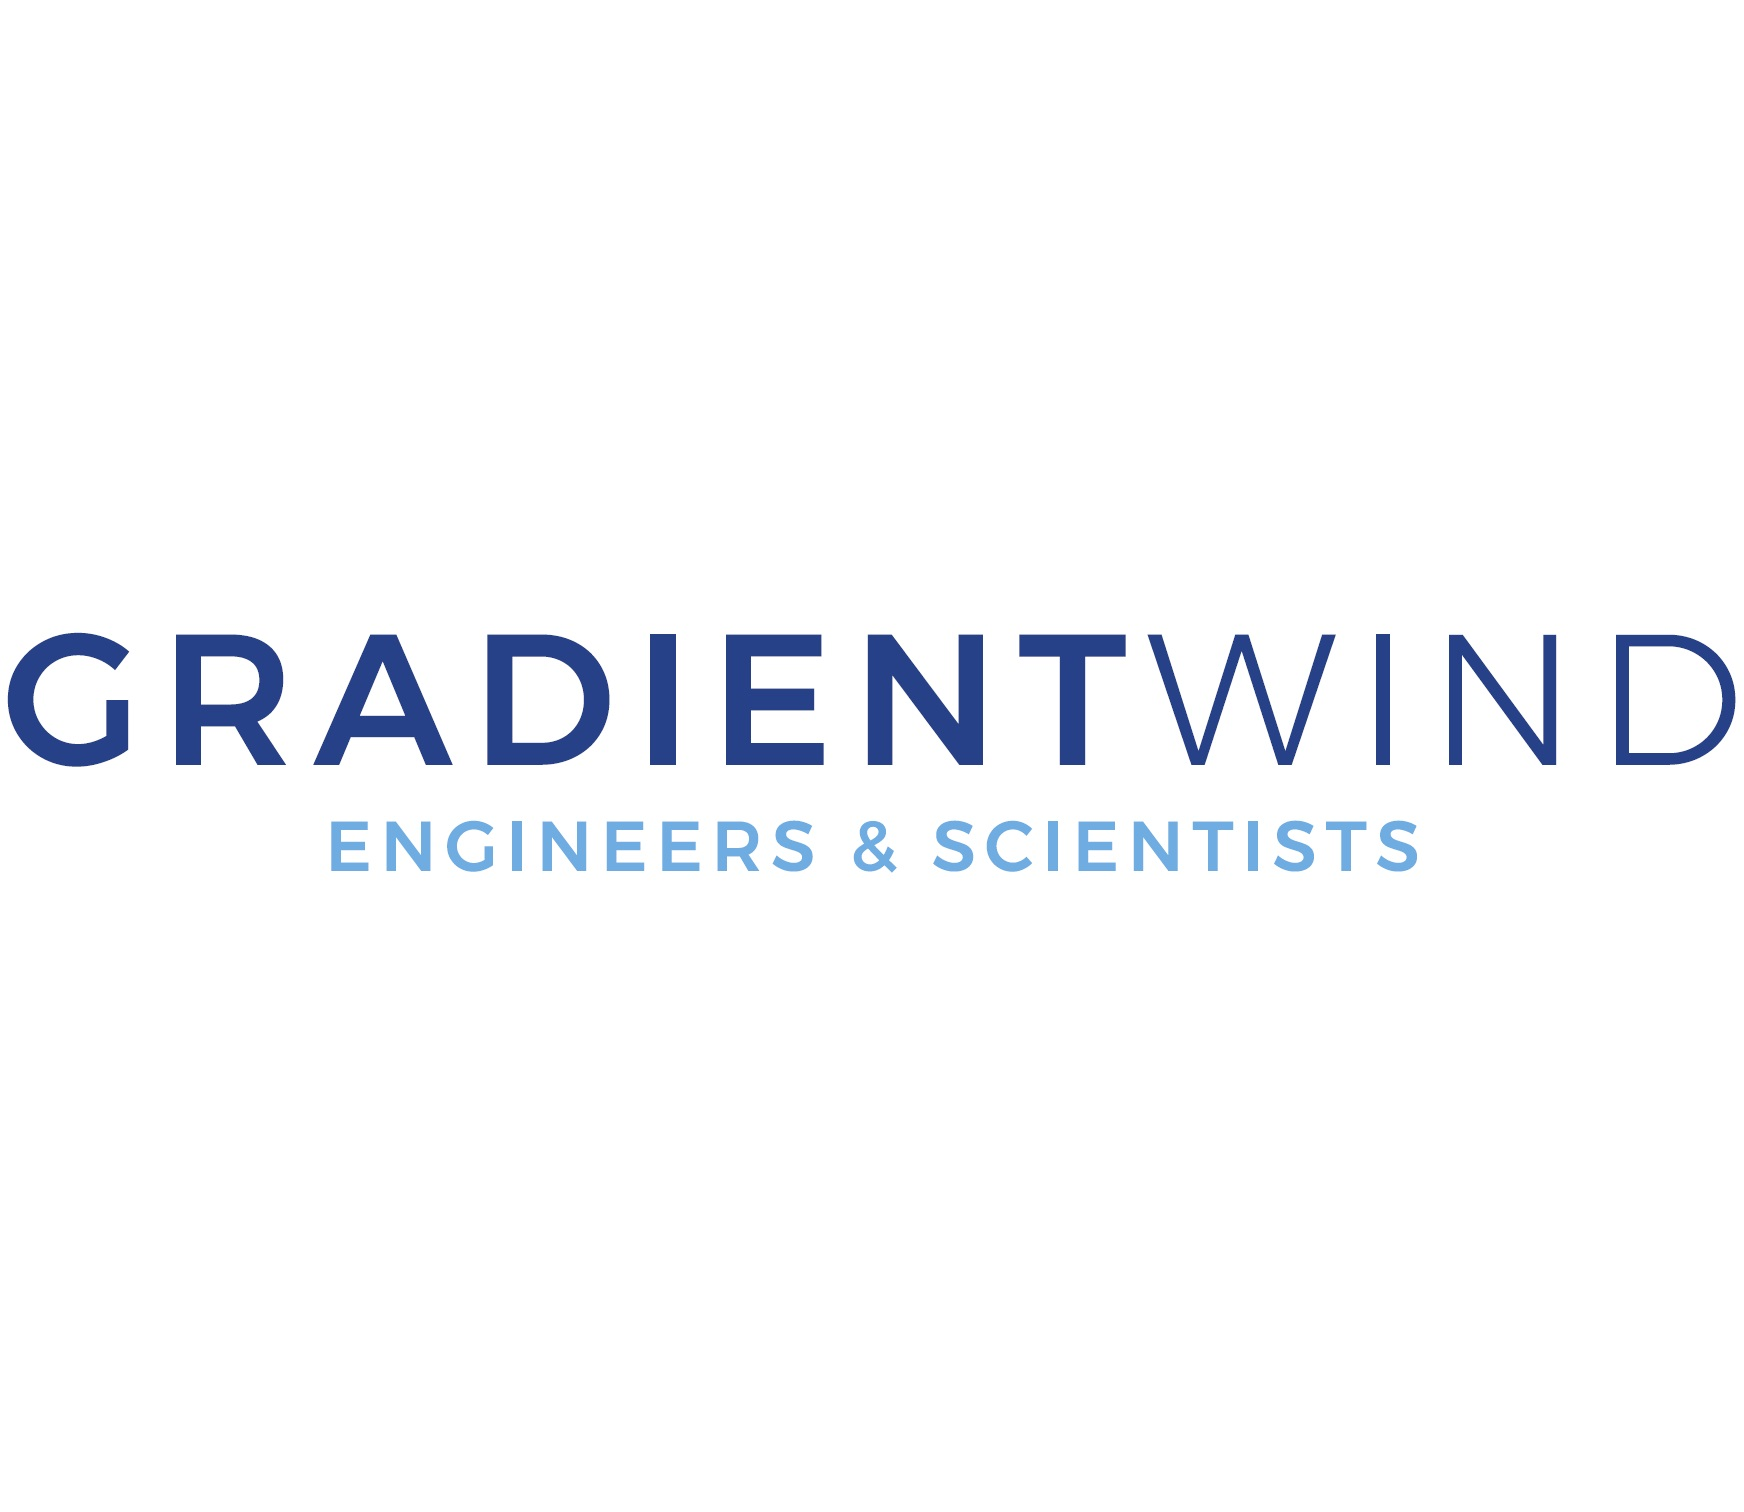 Gradient Wind Engineering - www.gradientwind.com